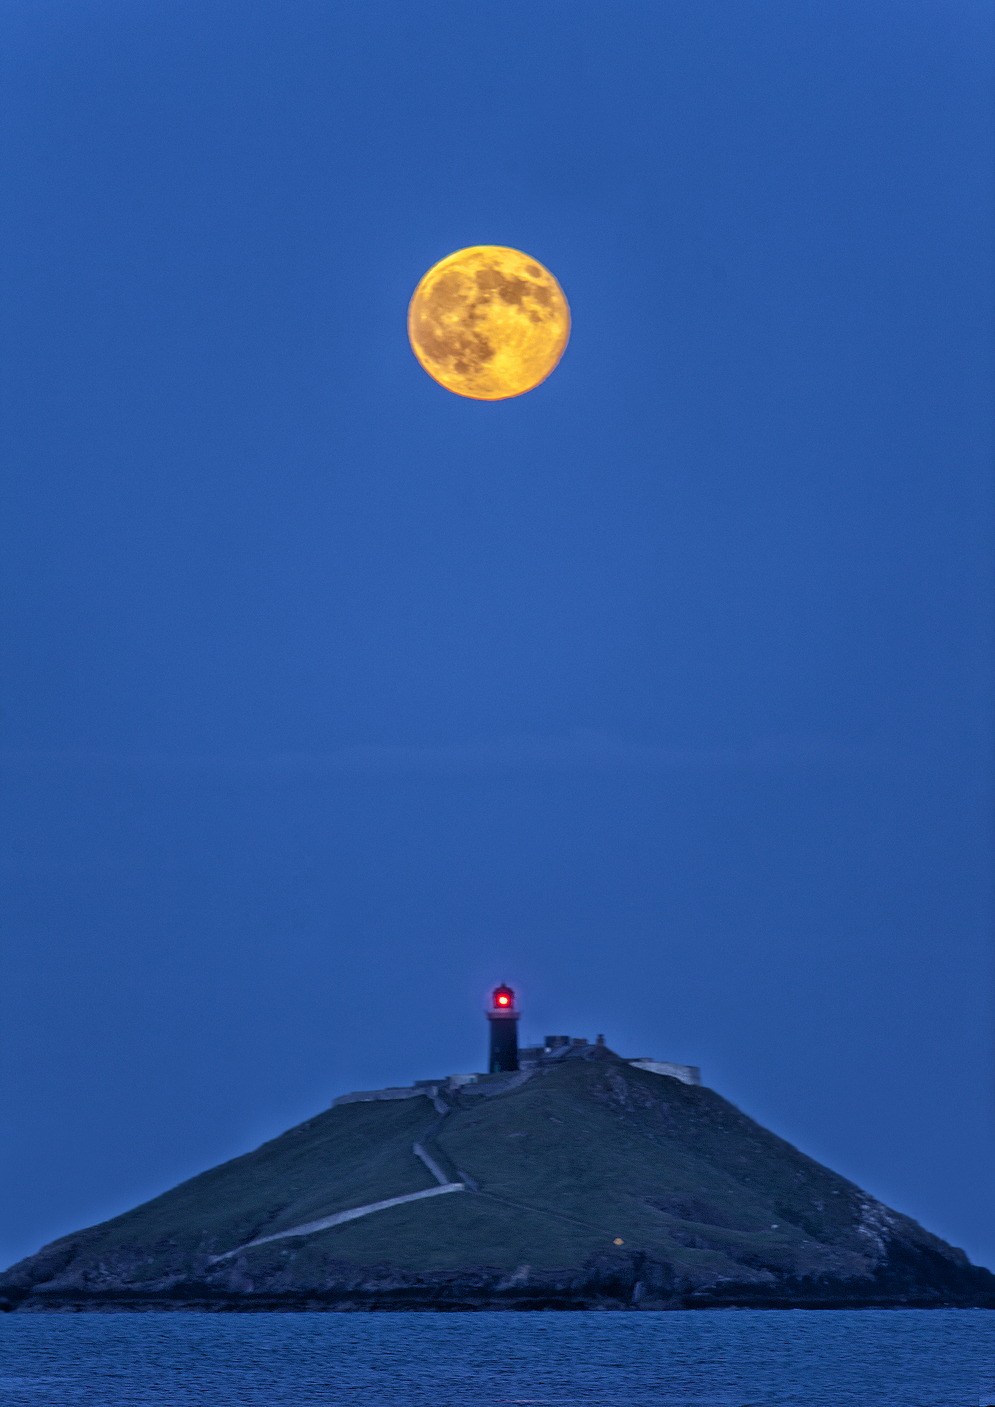 A 2013 supermoon as seen from Ireland